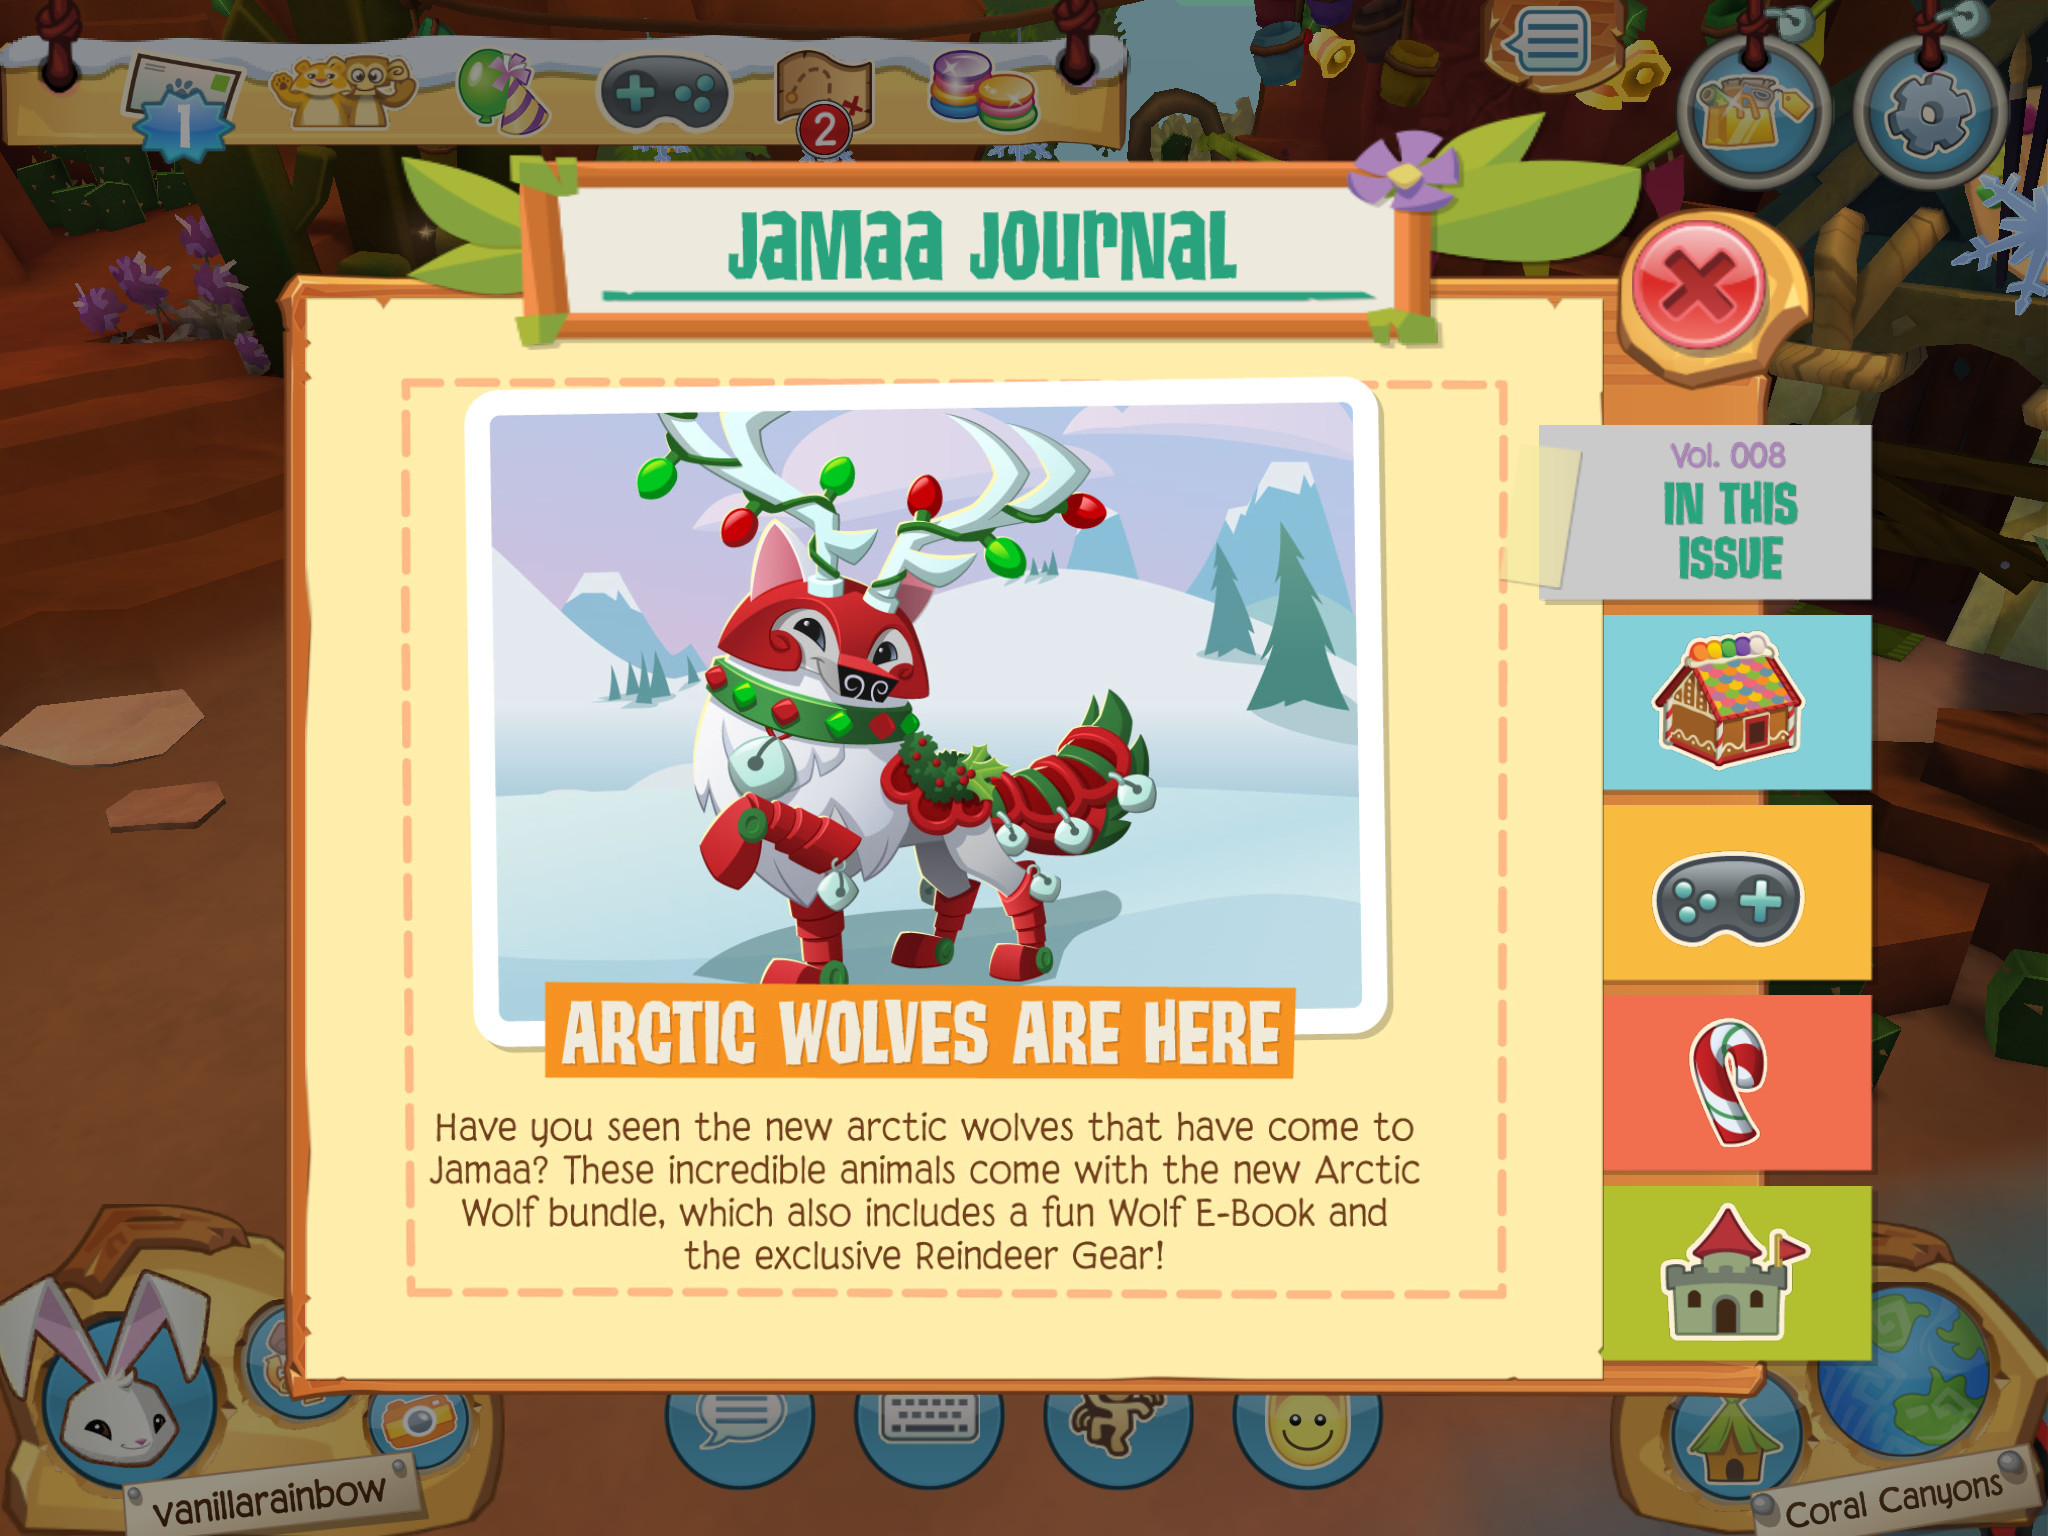 2048x1536 Volume 8 of the Jamaa Journal is out! Arctic Wolves have arrived in PWB!  They come with a cool Jamaaliday outfit! Make sure to go check them out!